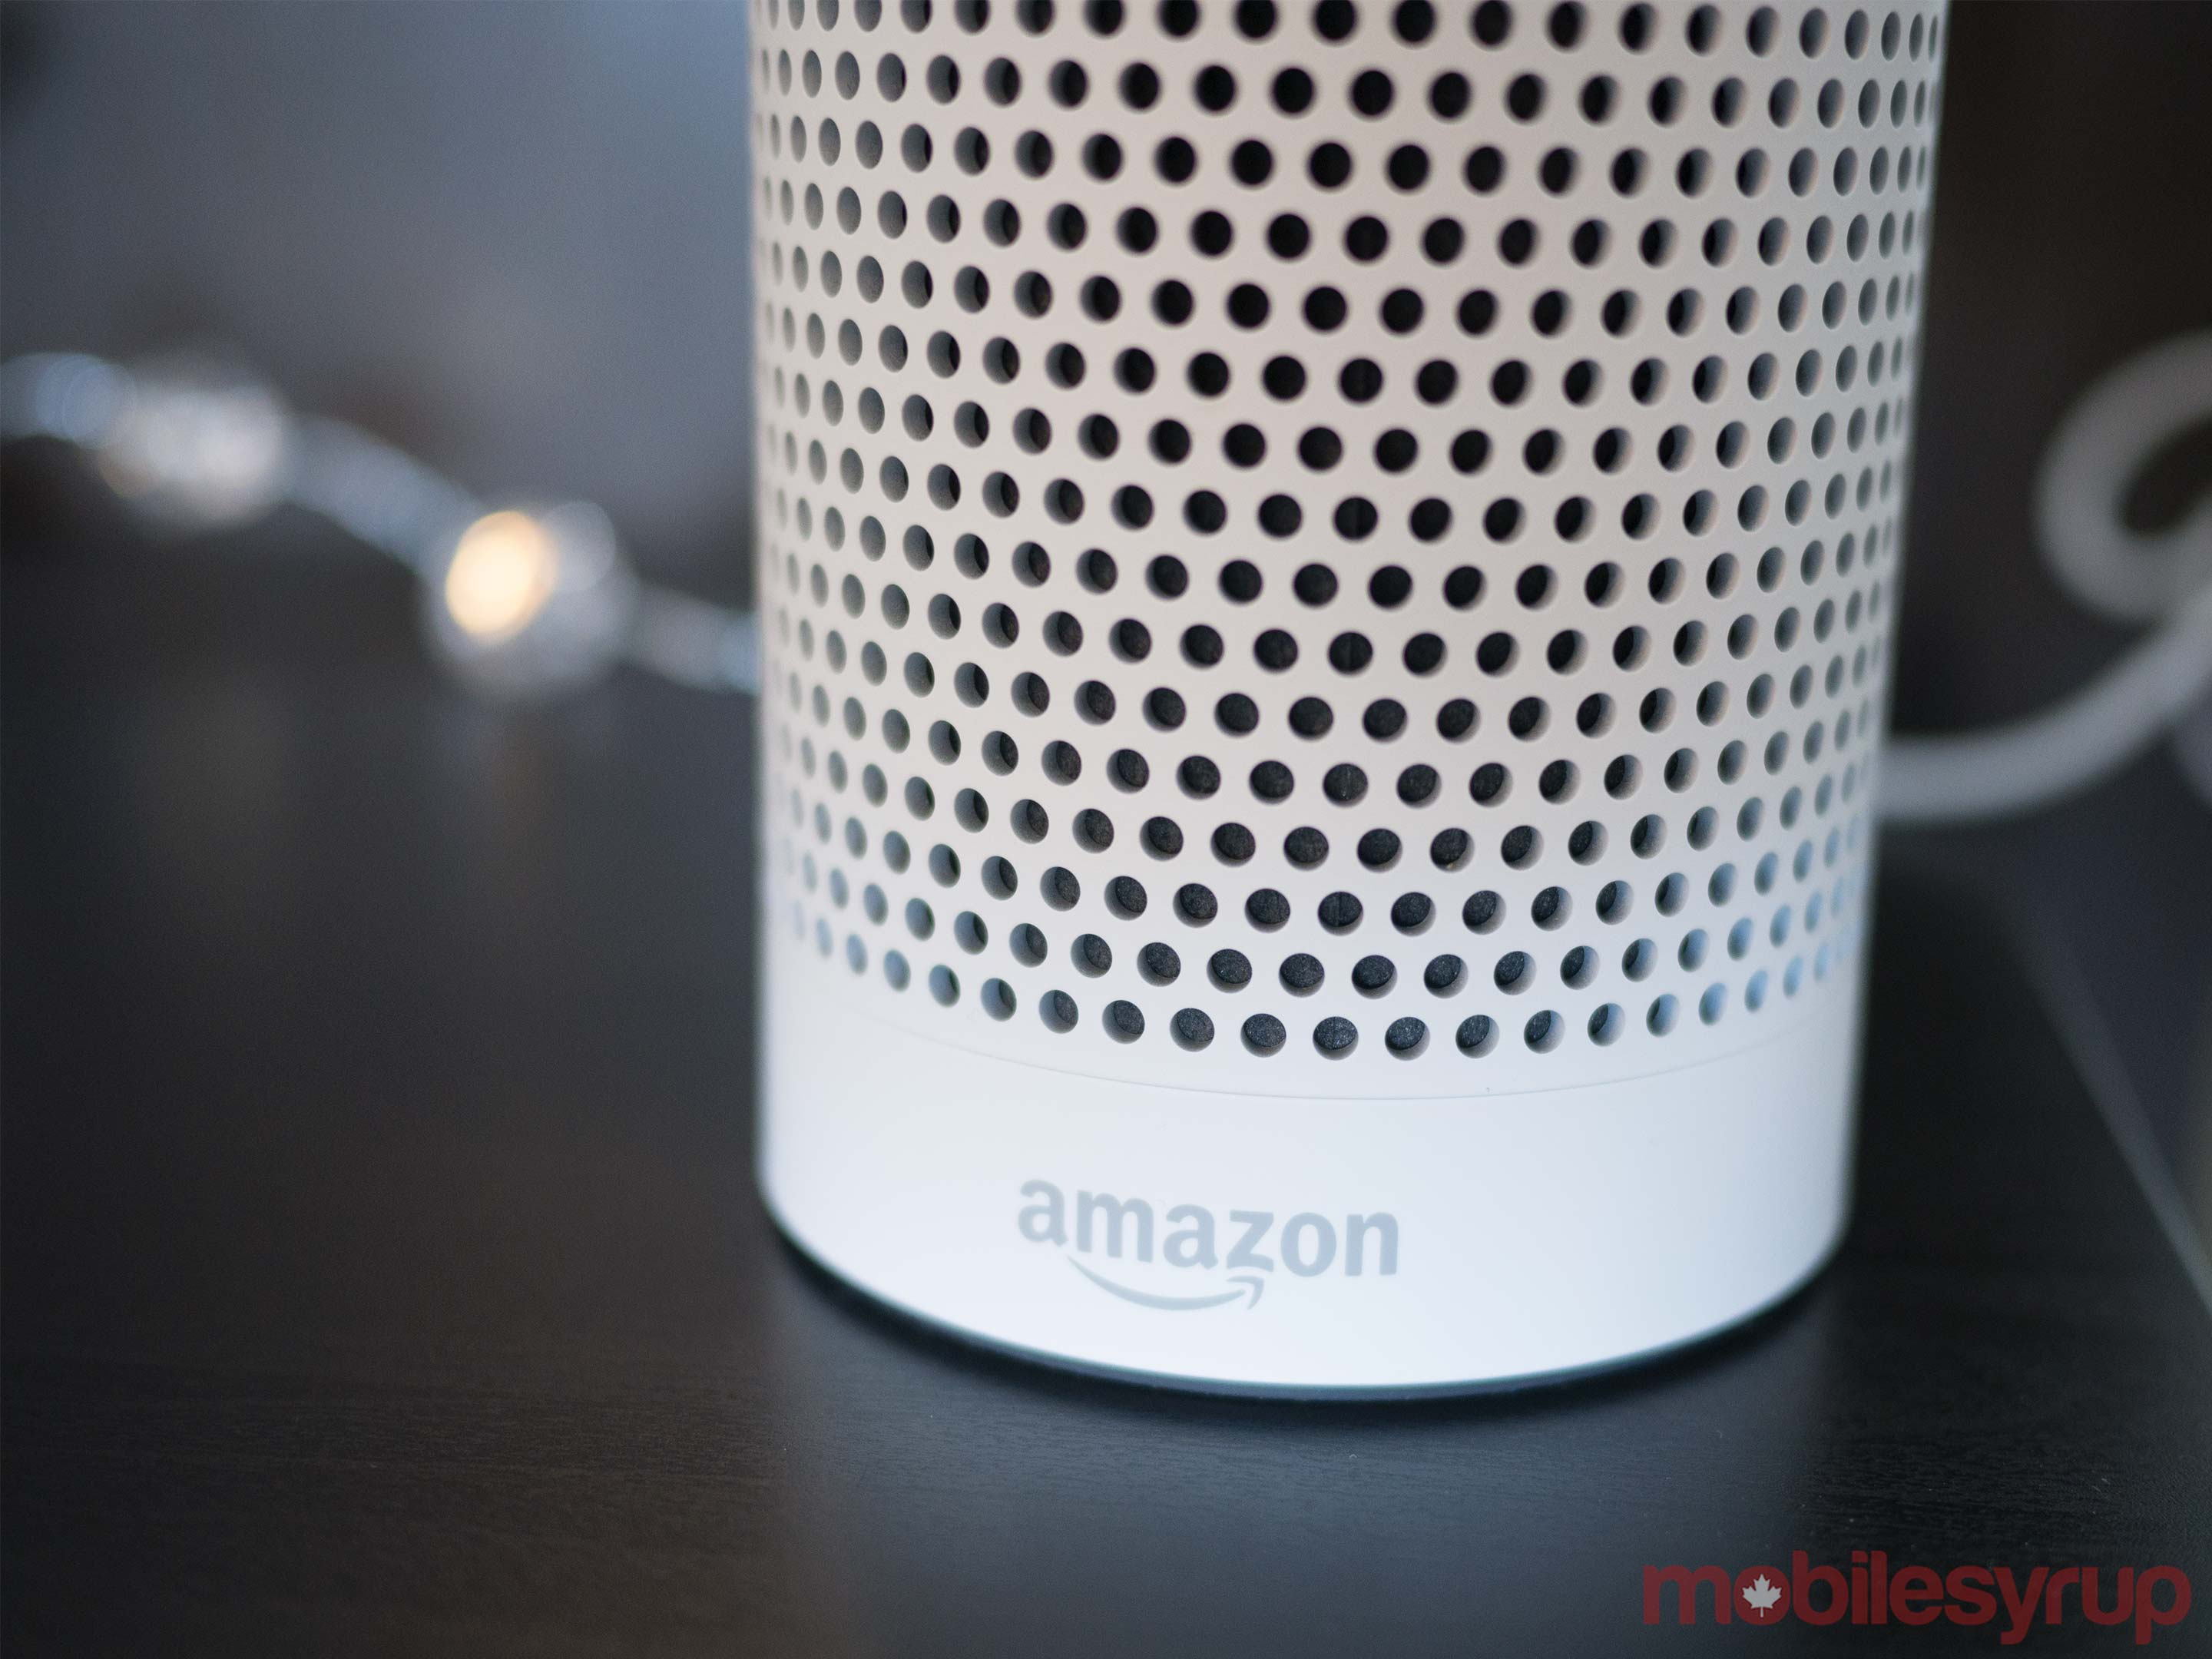 A Look At Amazons 2nd Gen Echo Plus And Dot Advance Speaker Portable Komputer Duo 30 Amazon Claims That The Sound Quality Has Been Improved Through Inclusion Of Dolby Processing Comparing Device To Original